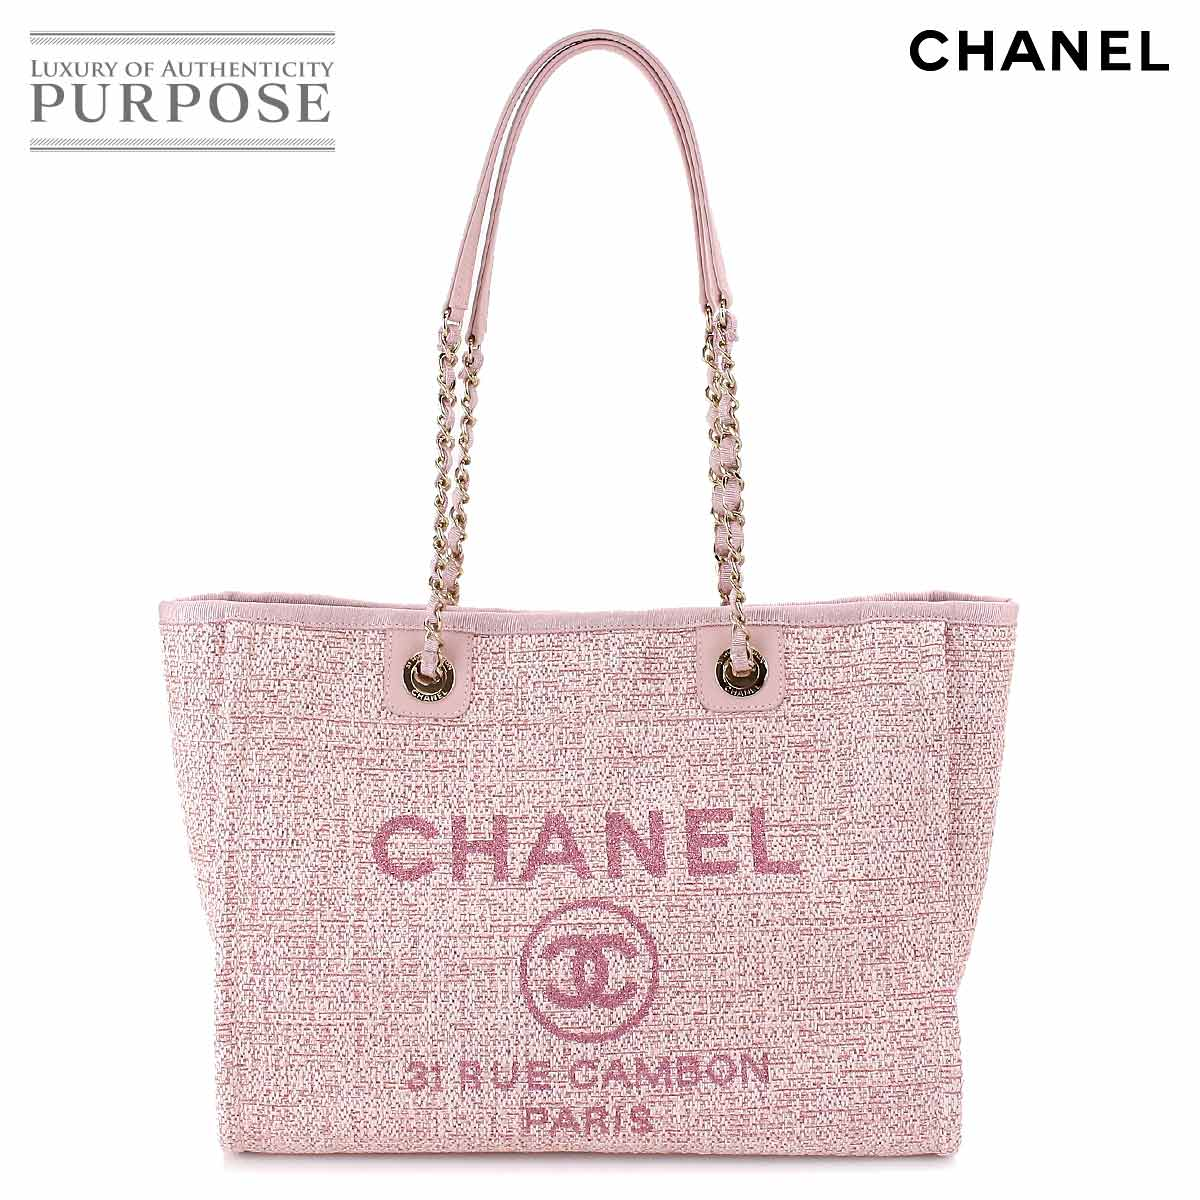 Chanel Deauville Mm Chain Tote Bag Canvas Pink A67001